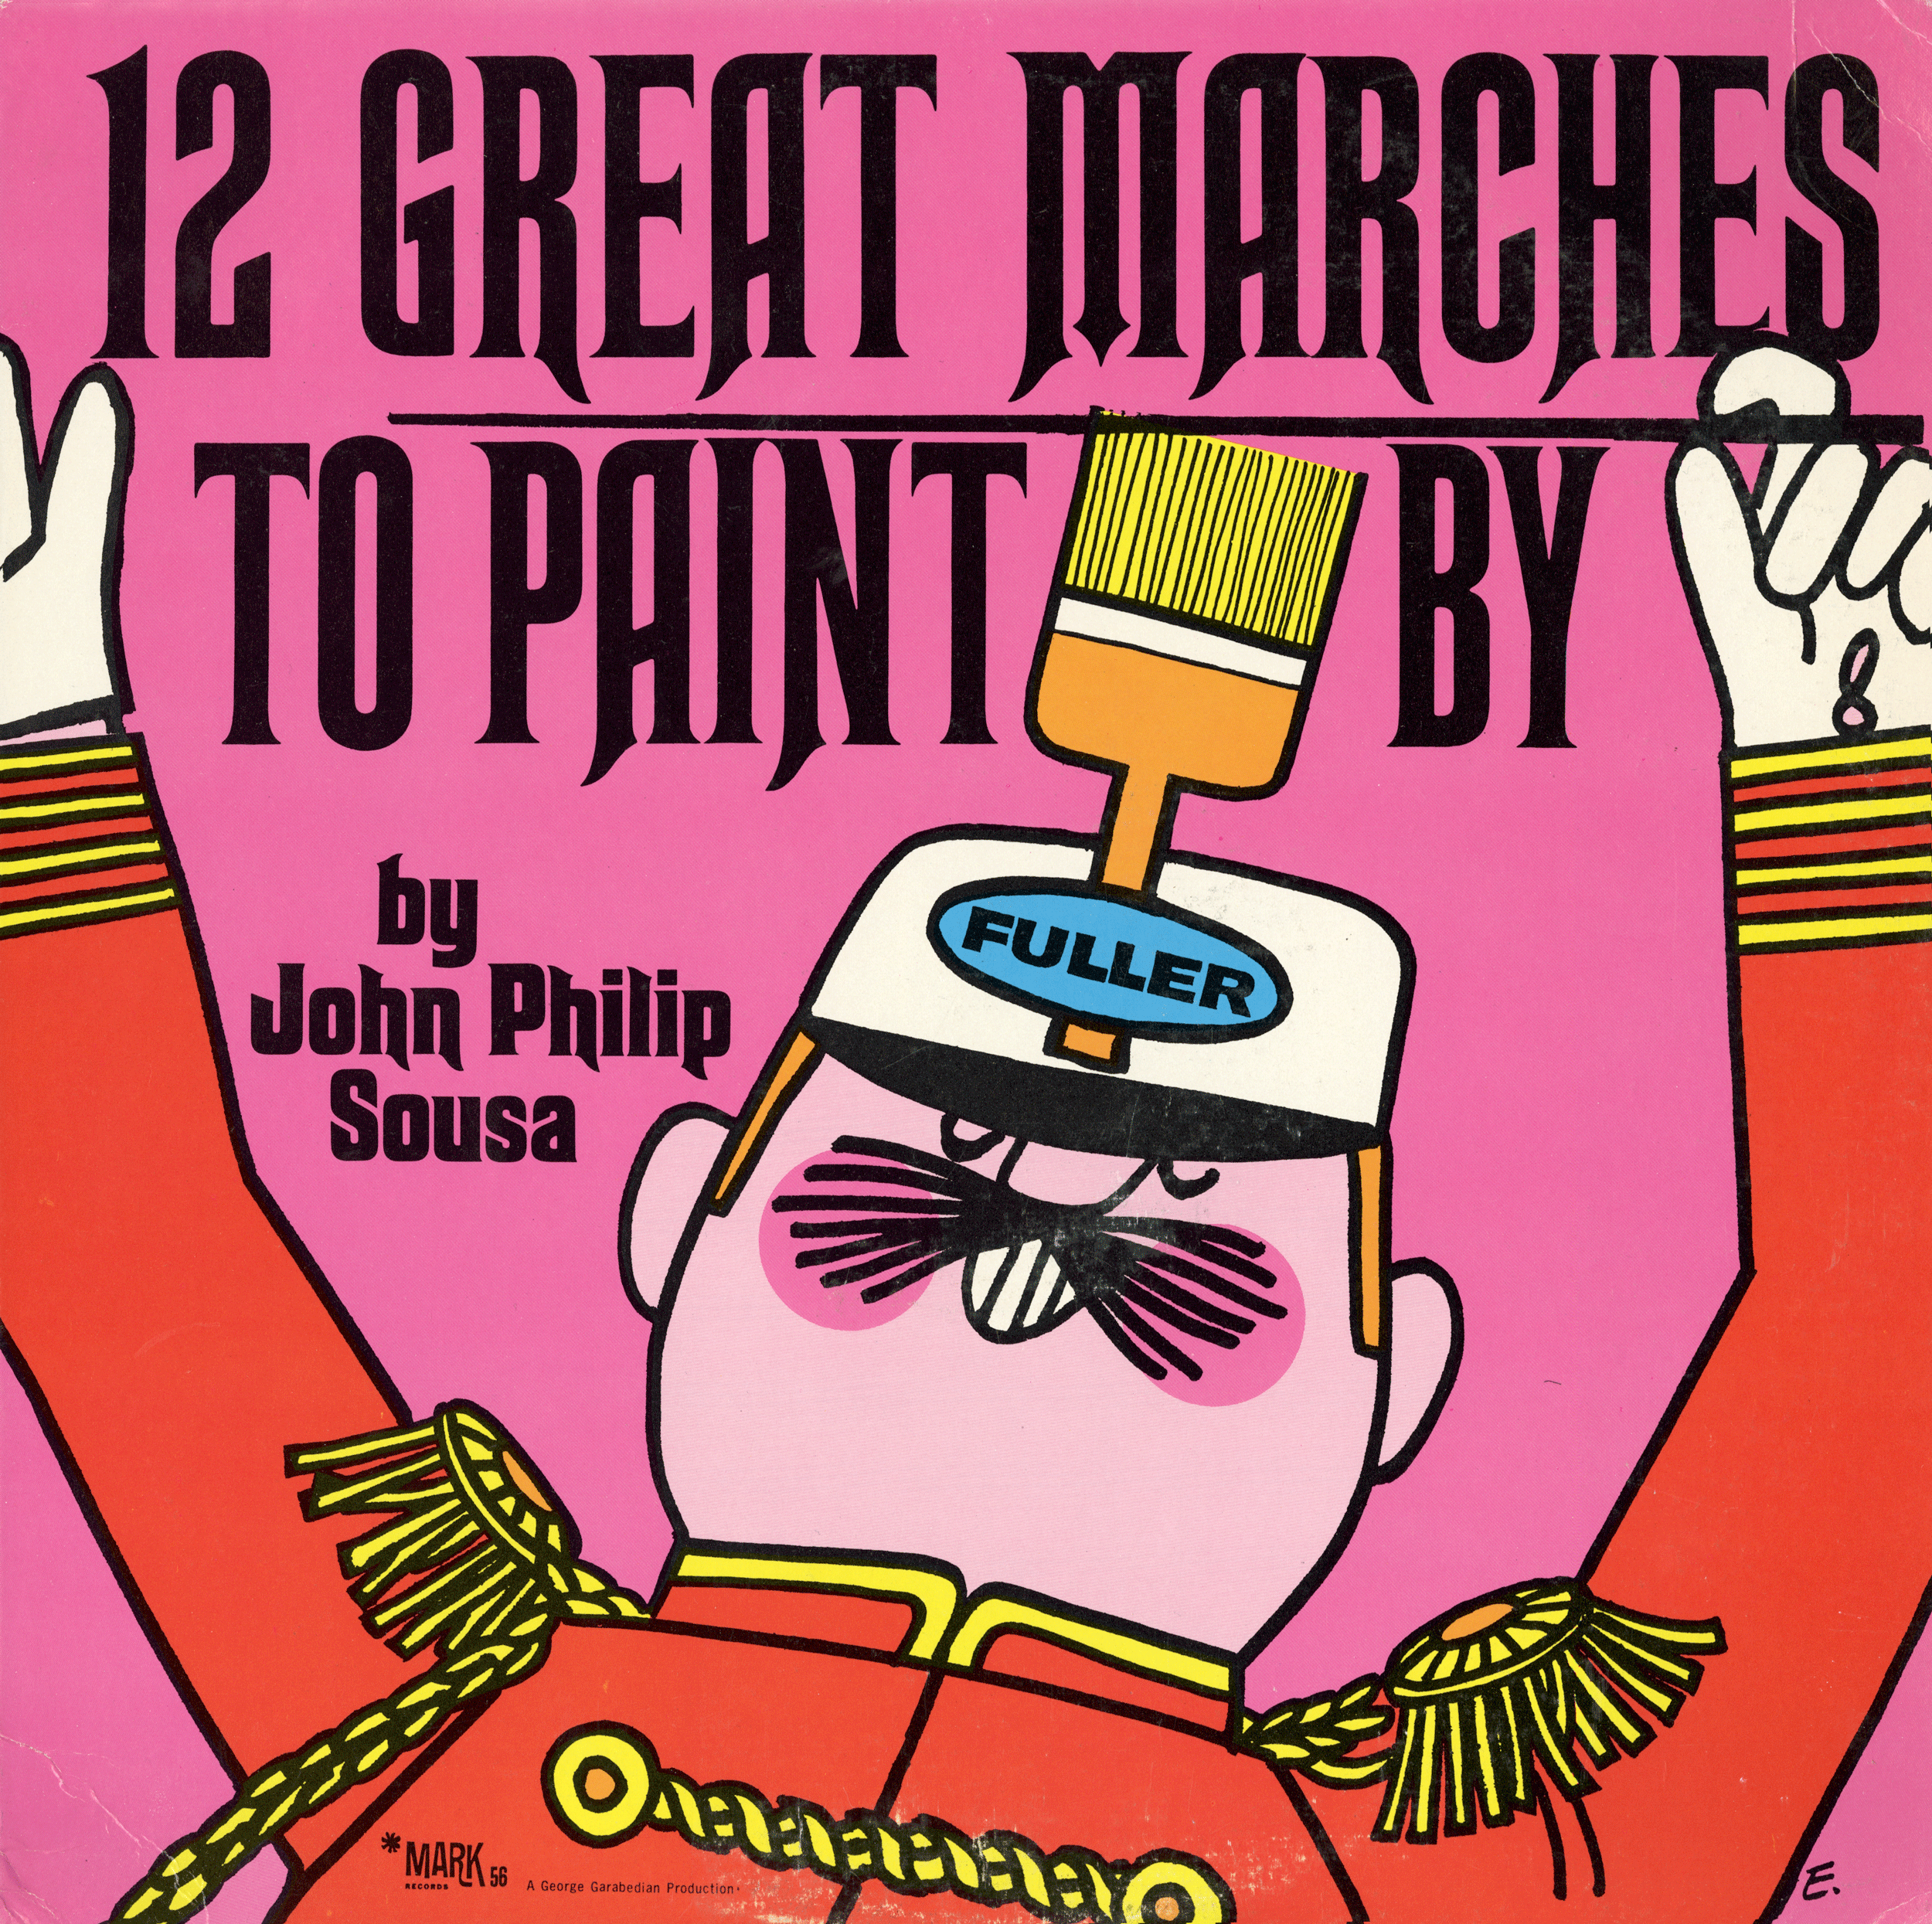 12-great-marches-to-paint-by_37392711462_o.png